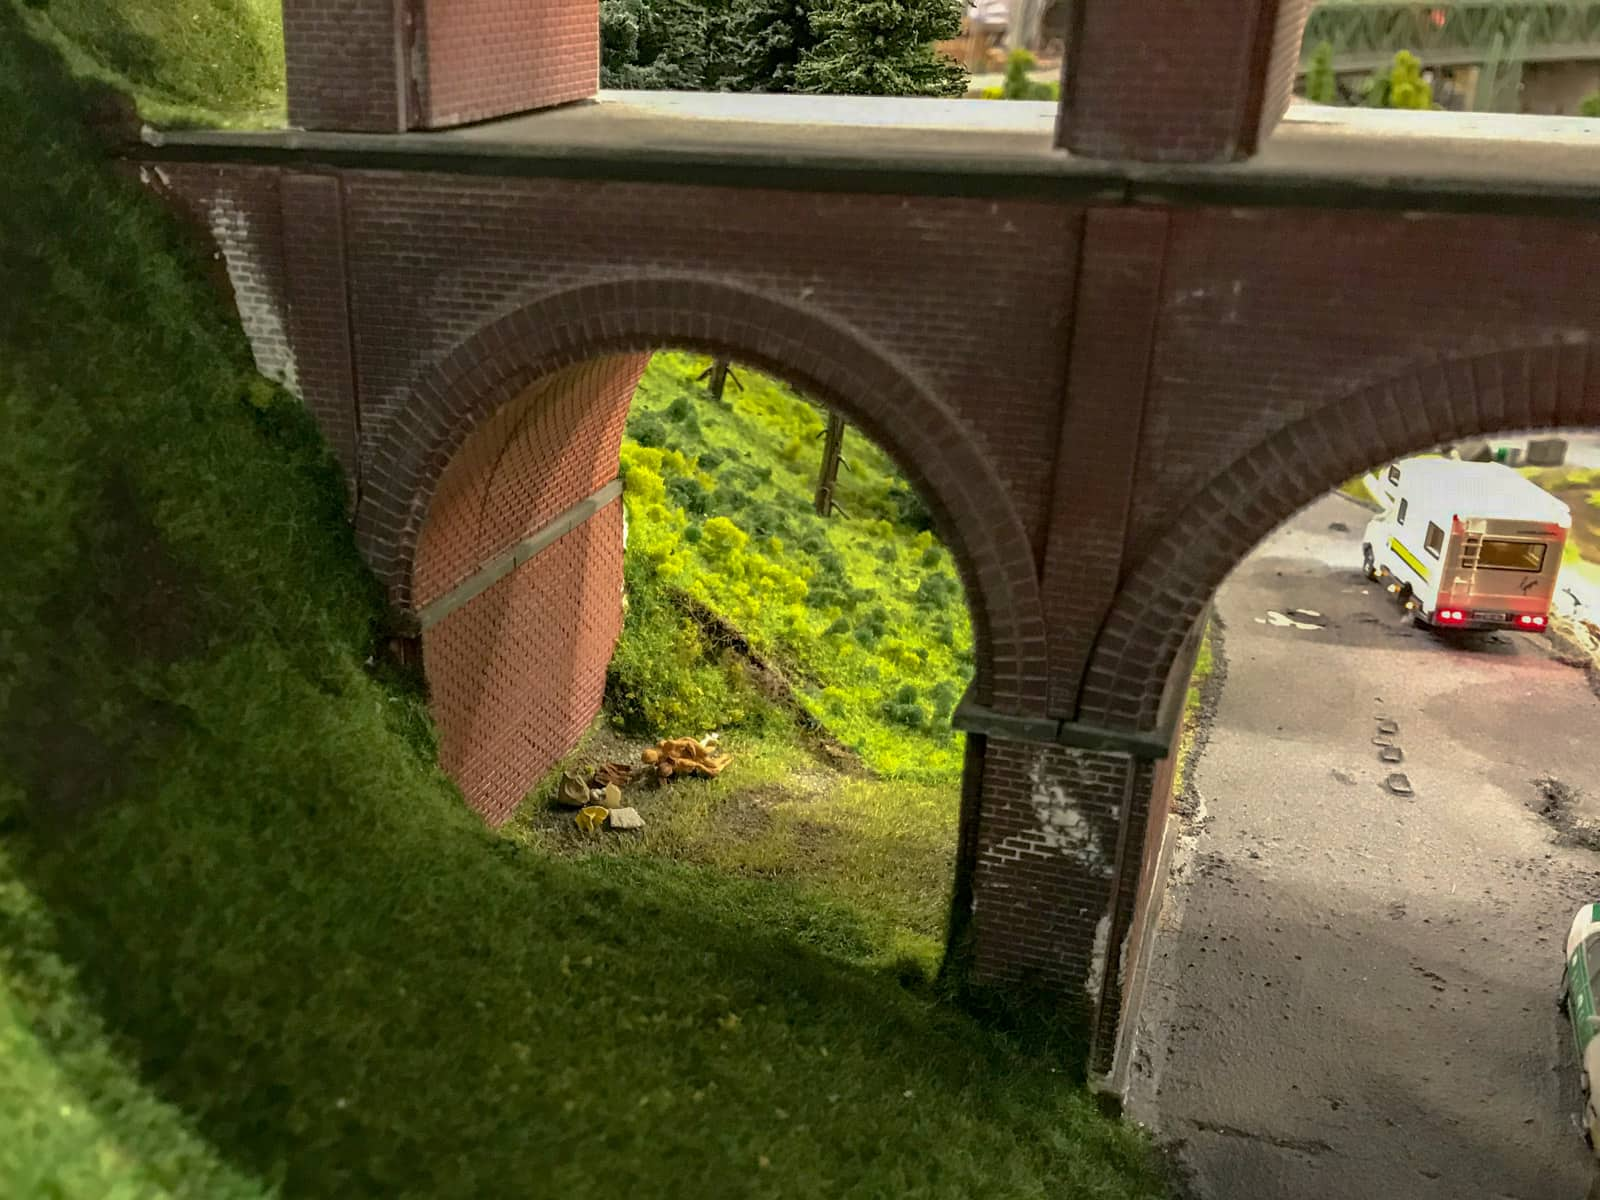 Miniature figurines romping in the grass, under the arches of a bridge